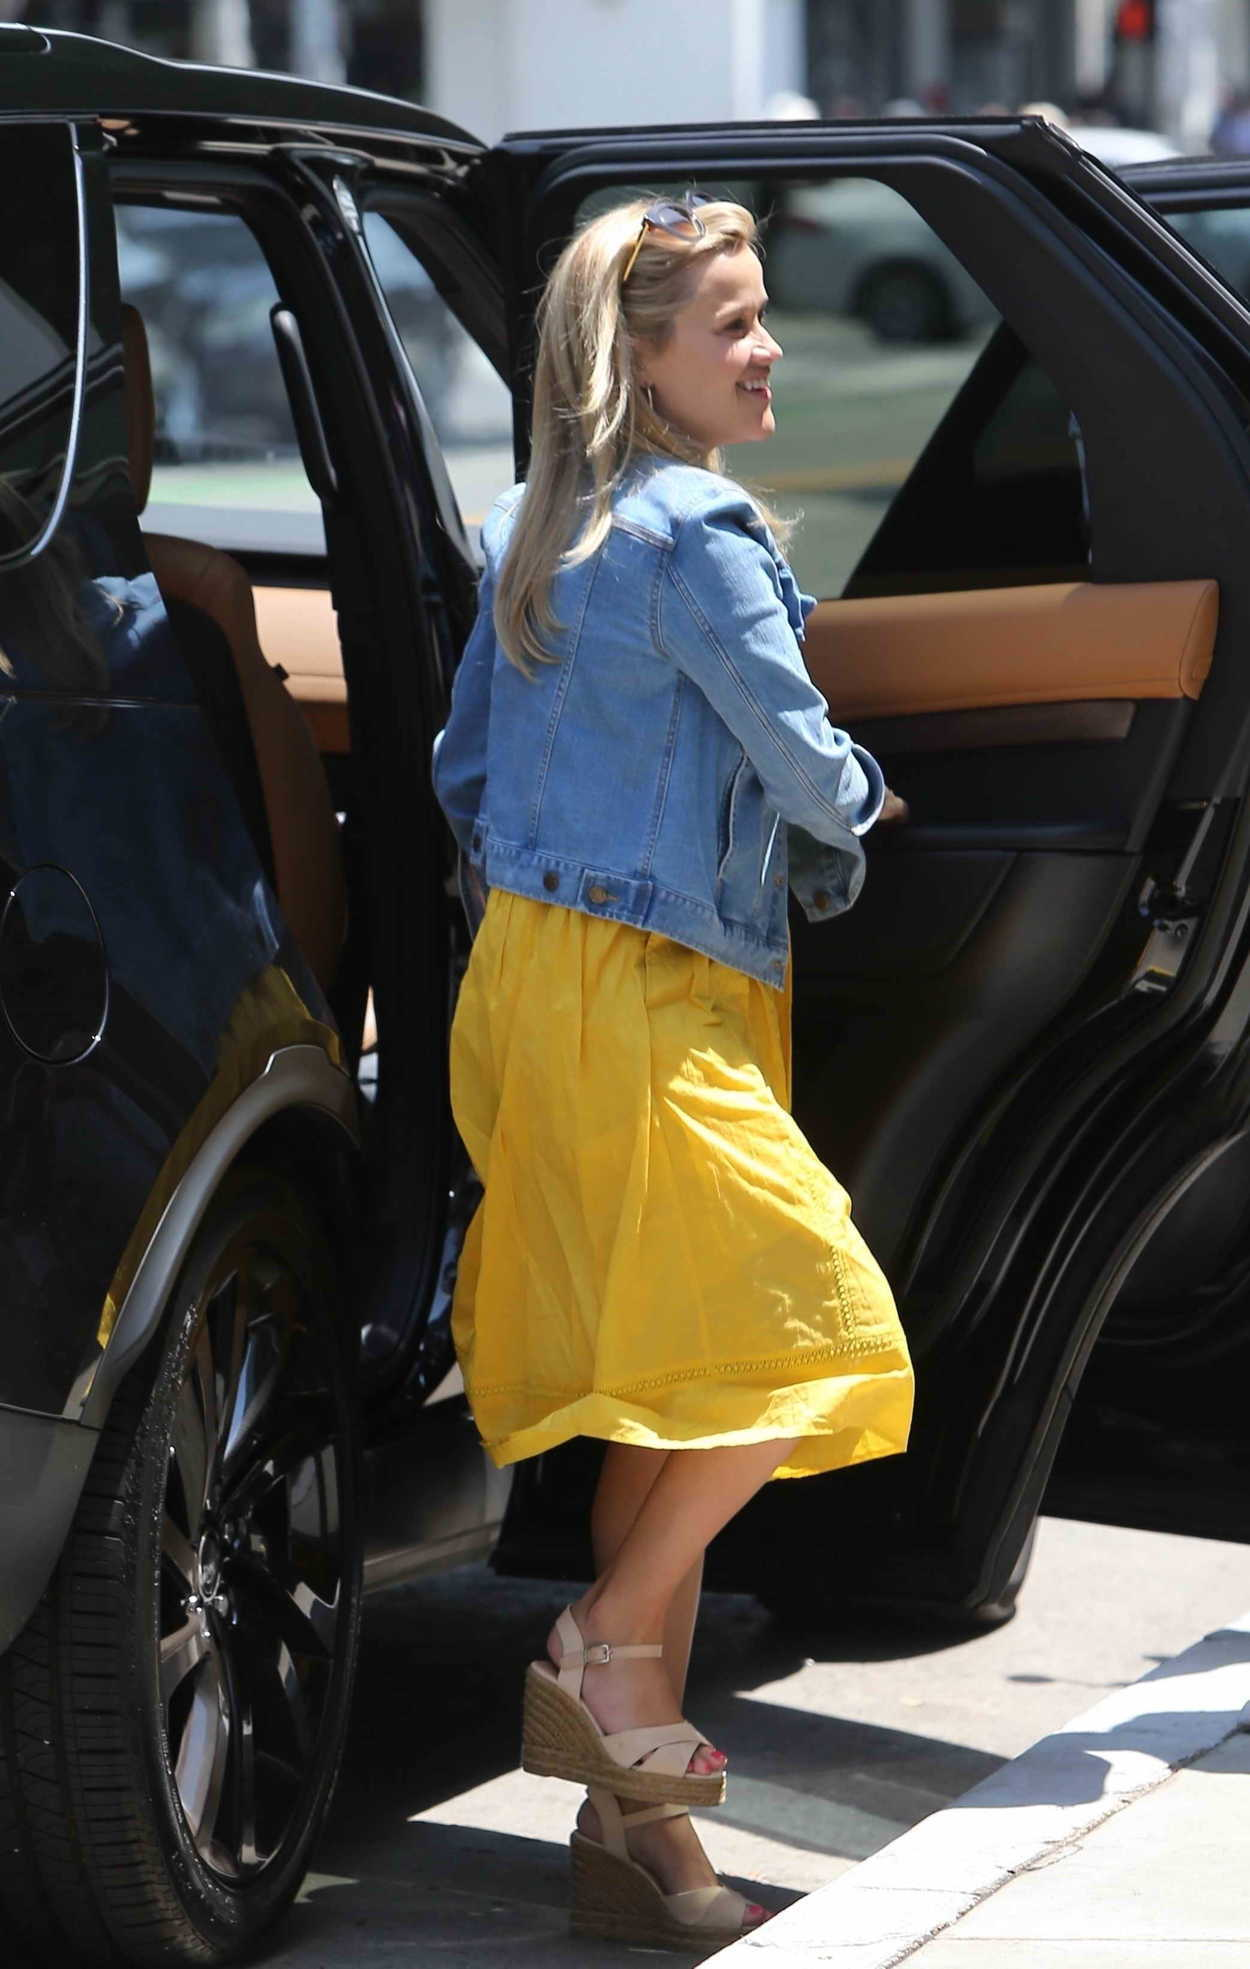 Reese Witherspoon In A Yeloow Summer Dress Was Seen Out In